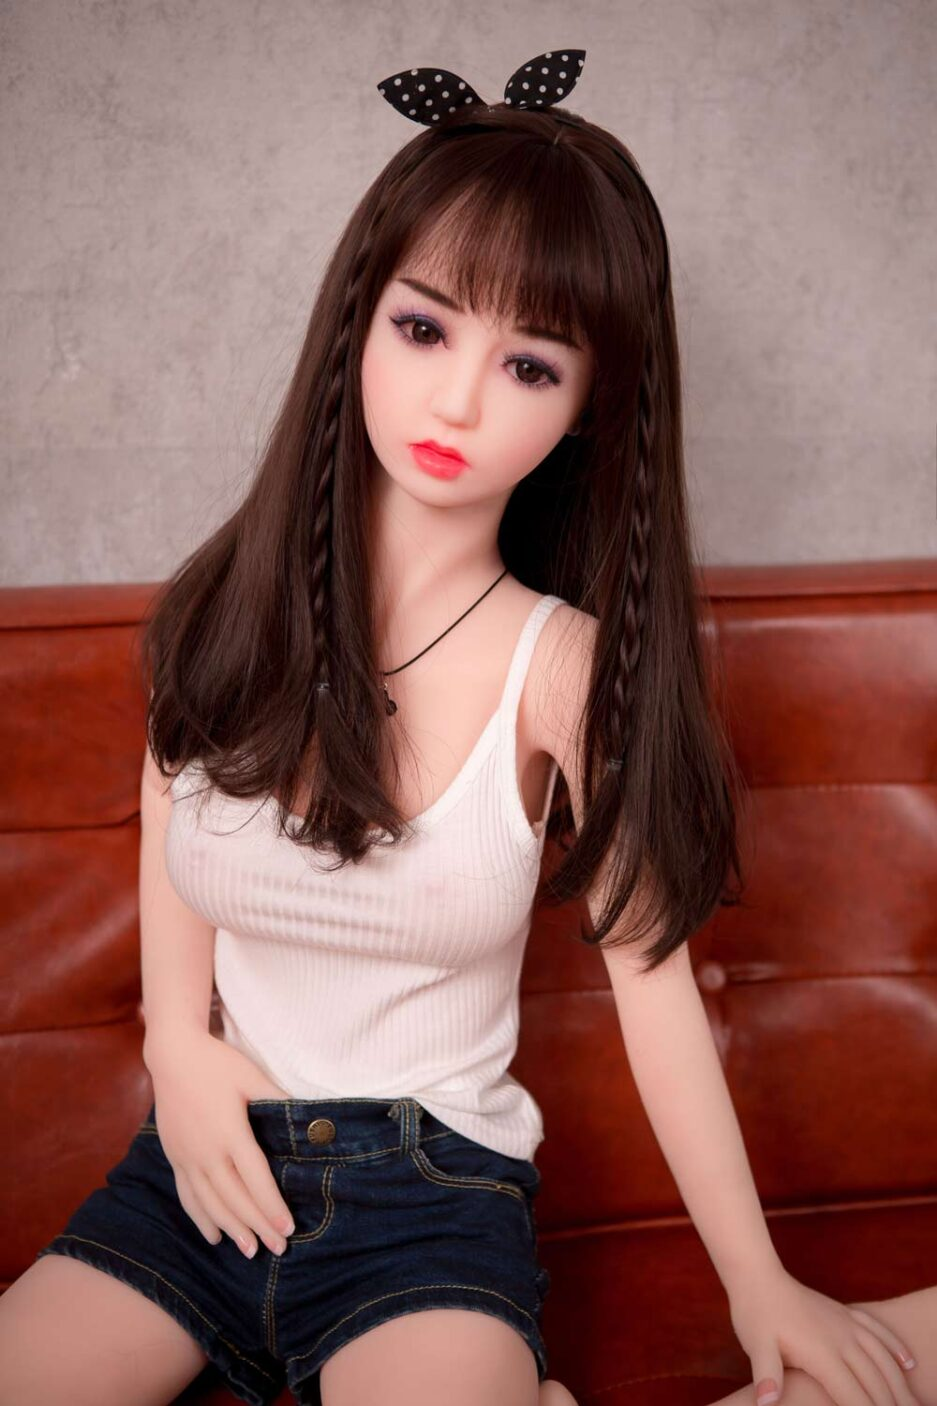 Mini sex doll with hands in denim shorts